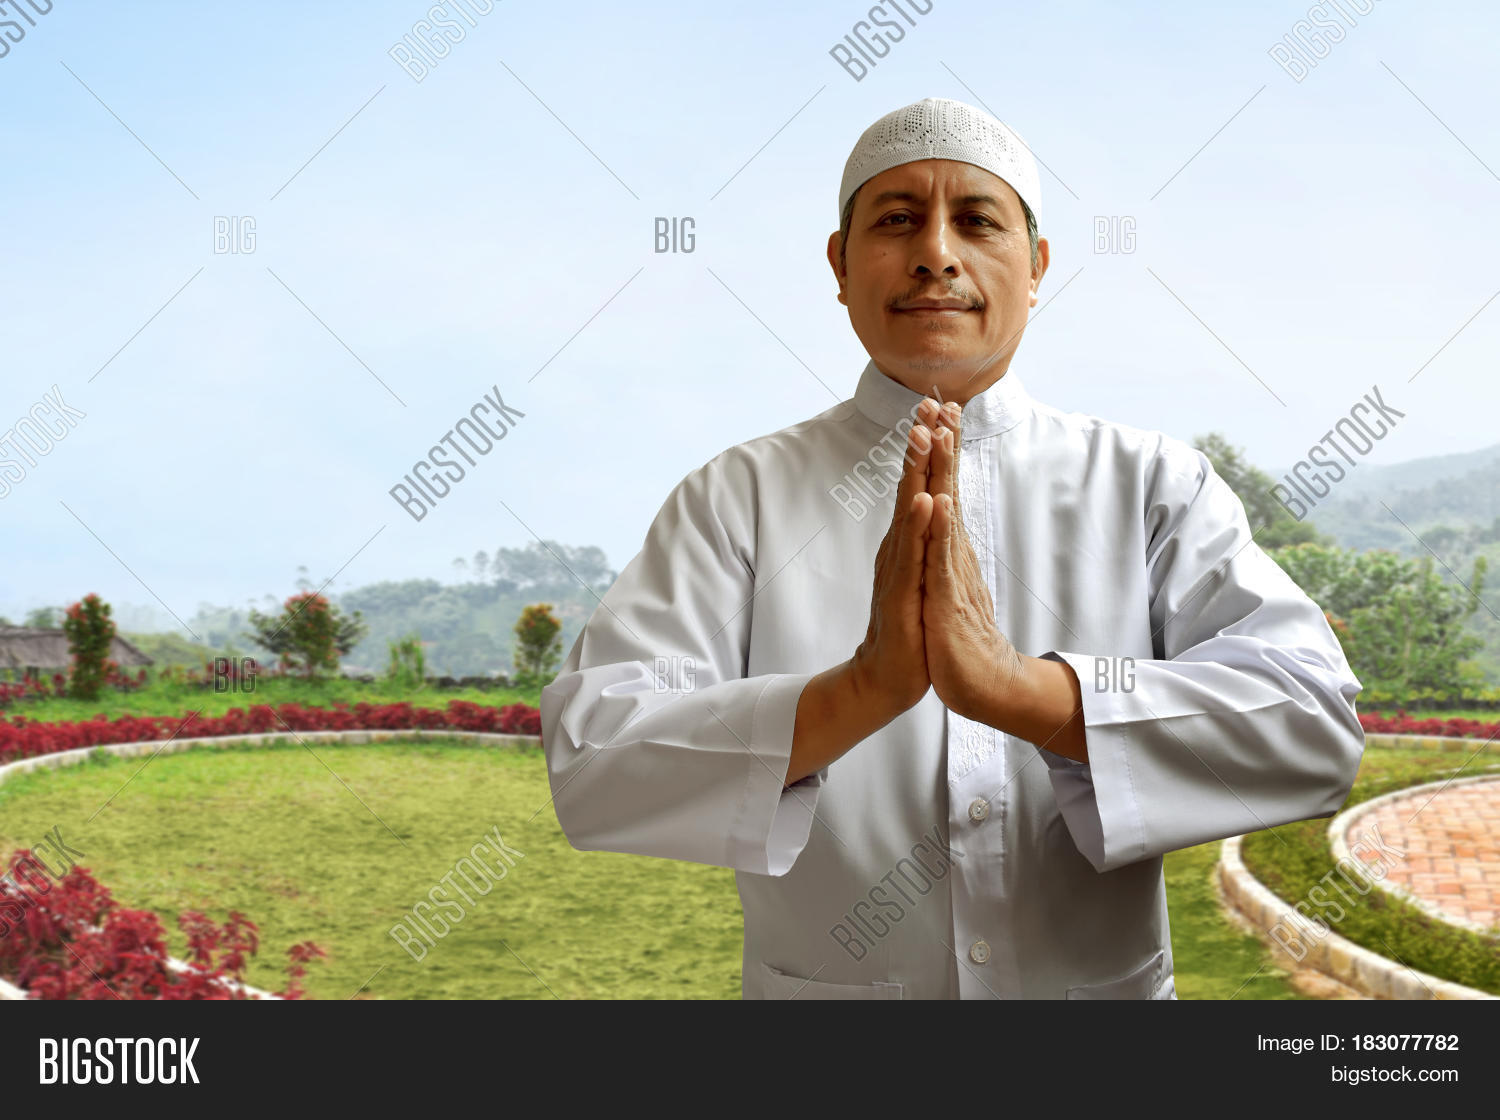 Old Muslim Man Smiling Image Photo Free Trial Bigstock